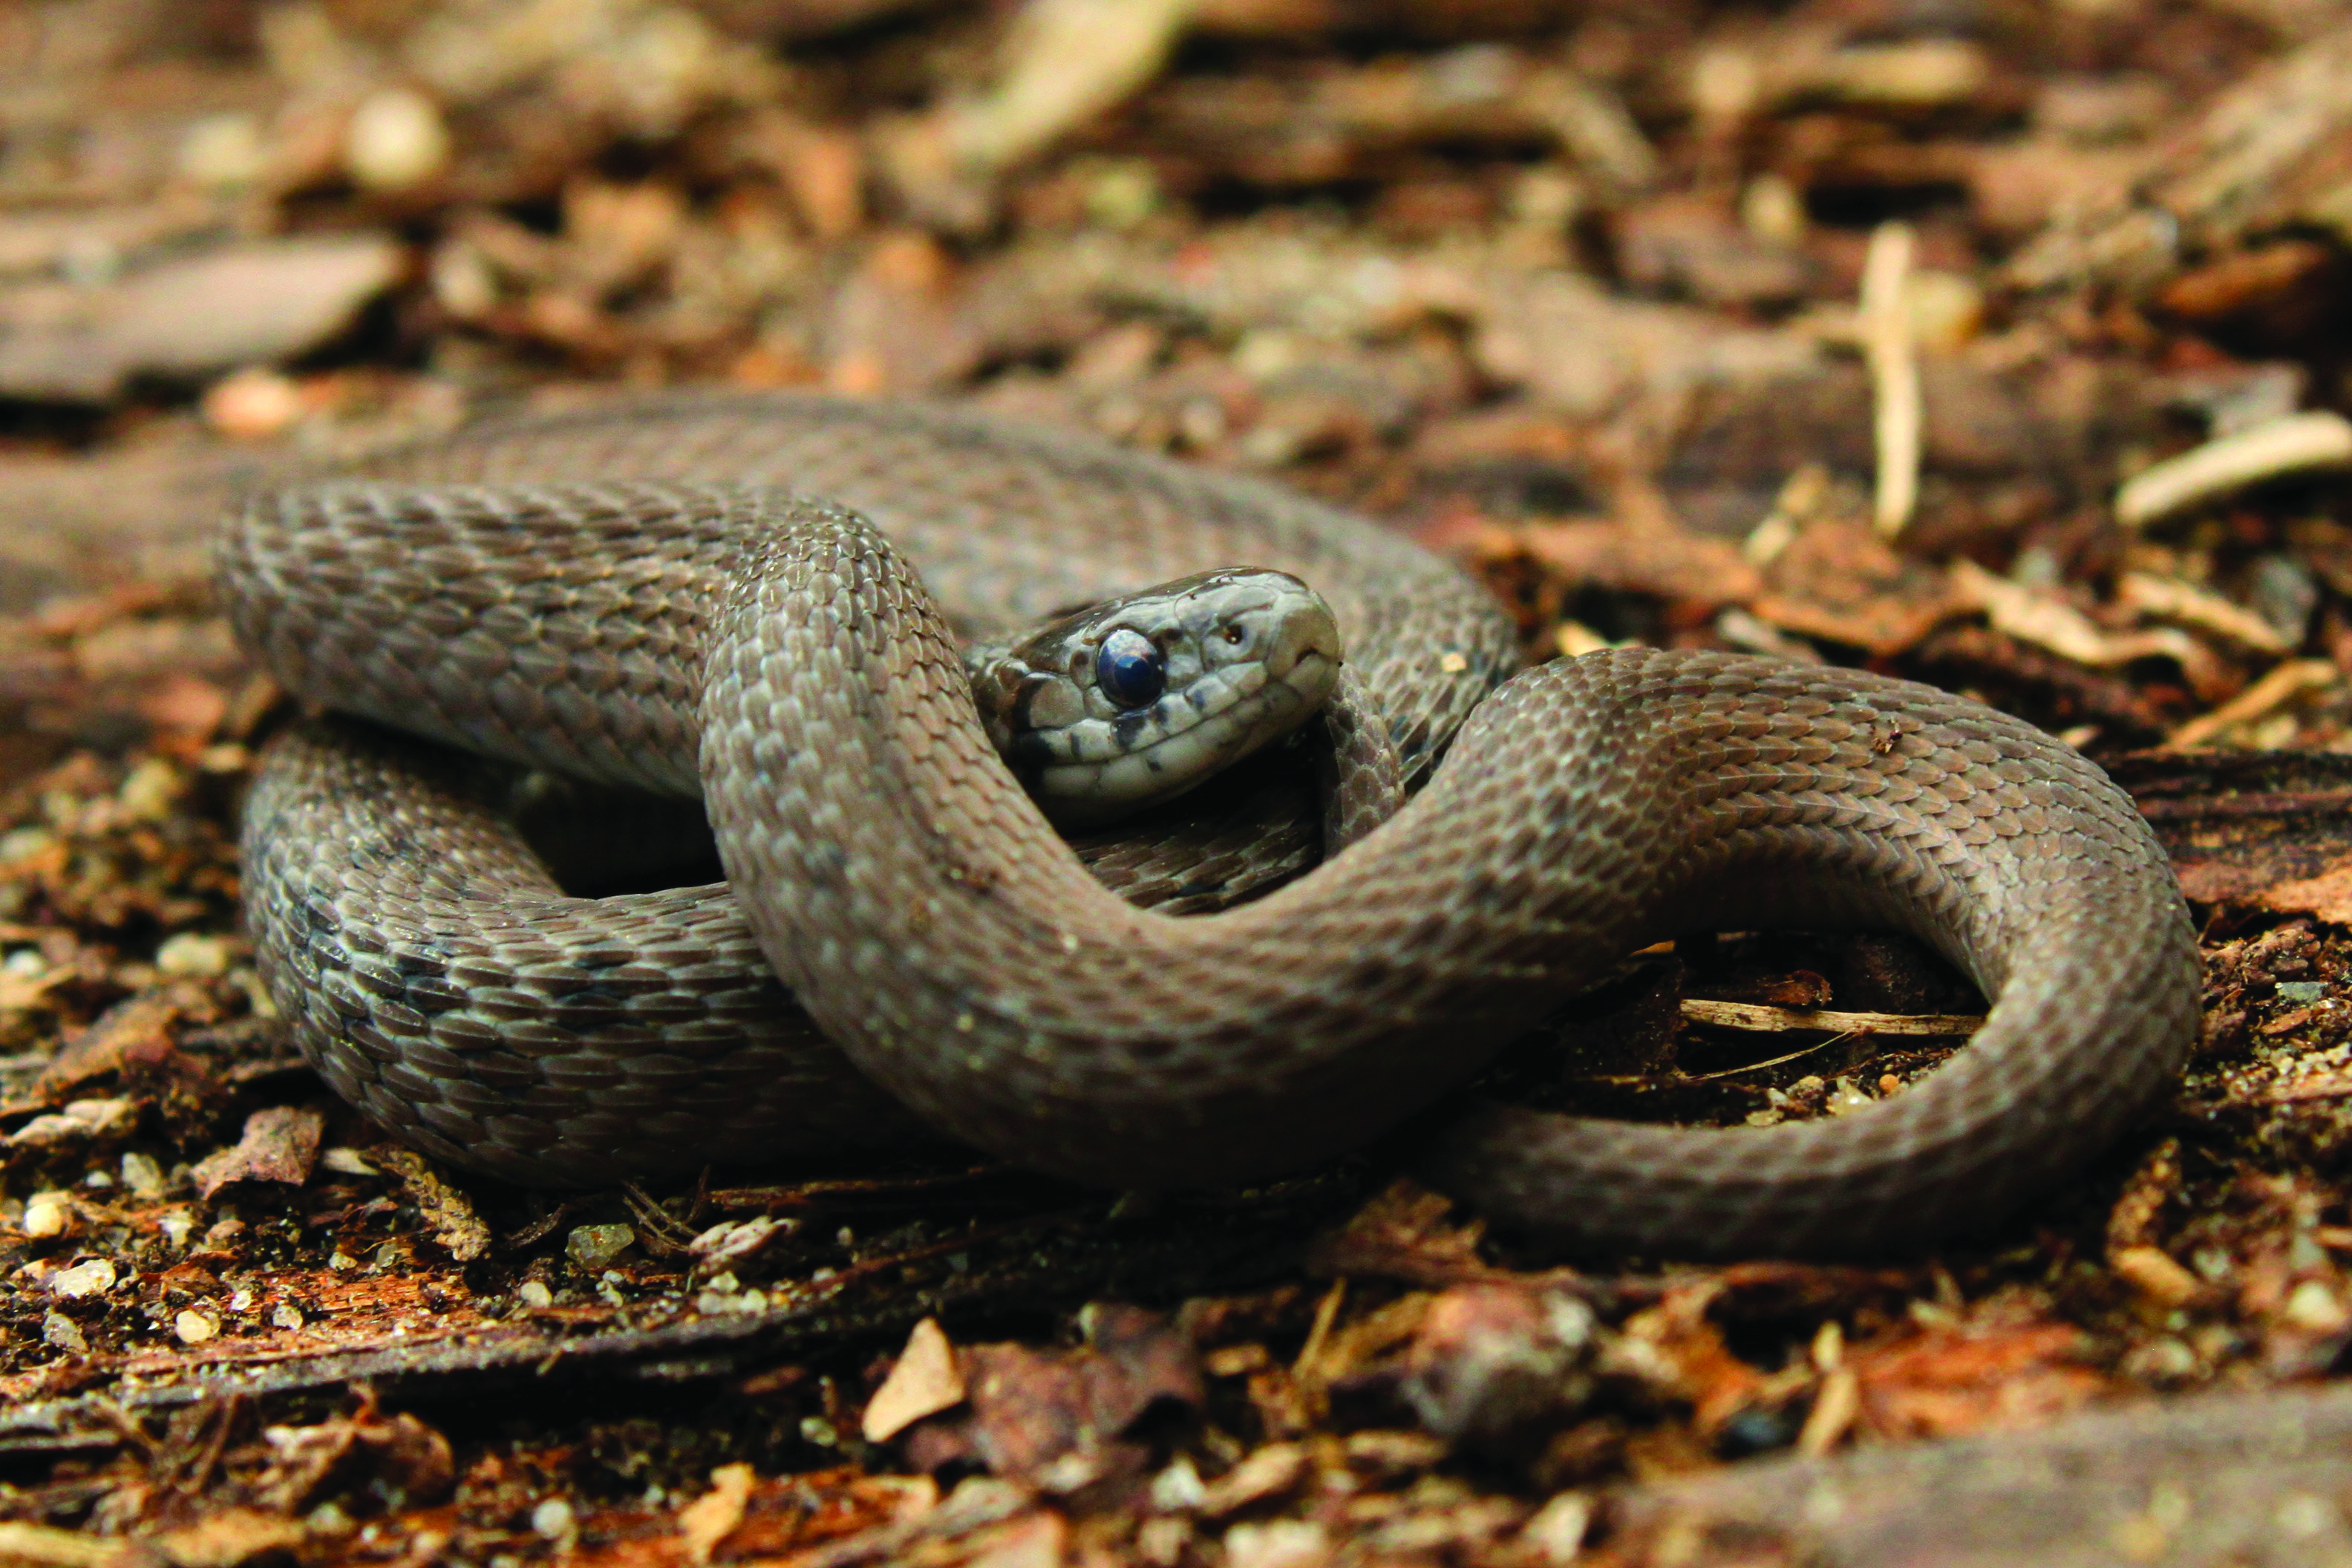 Know Your Local Snakes – The Academy of Natural Sciences